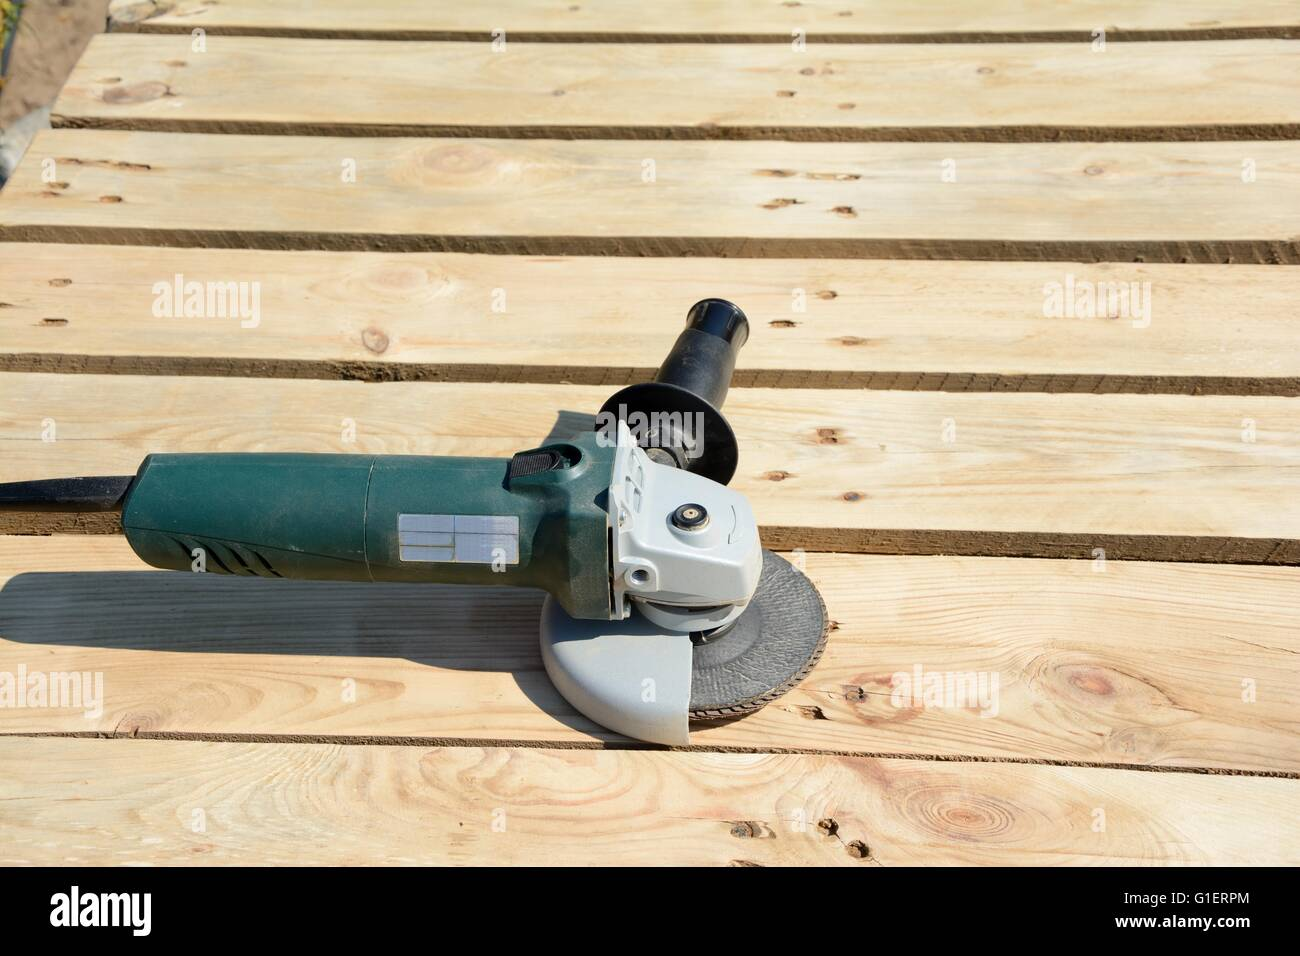 Angle grinder with abrasive disc on planks after work. - Stock Image